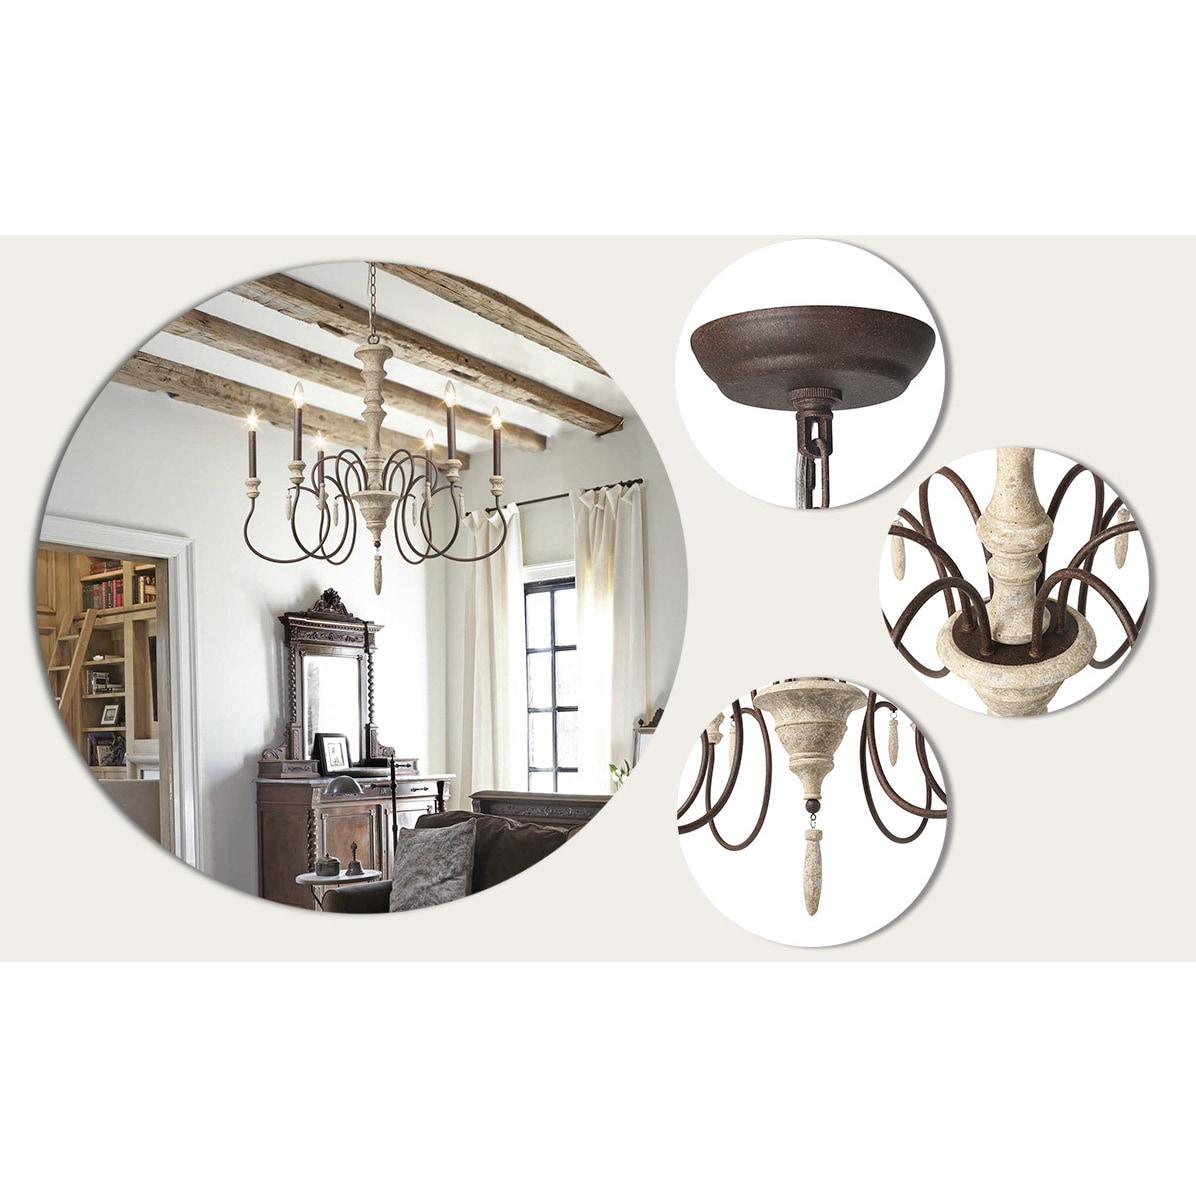 Lnc 6 Light Shabby Chic French Country Wooden Chandelier Lighting Rustic Chandeliers Pendant Lights